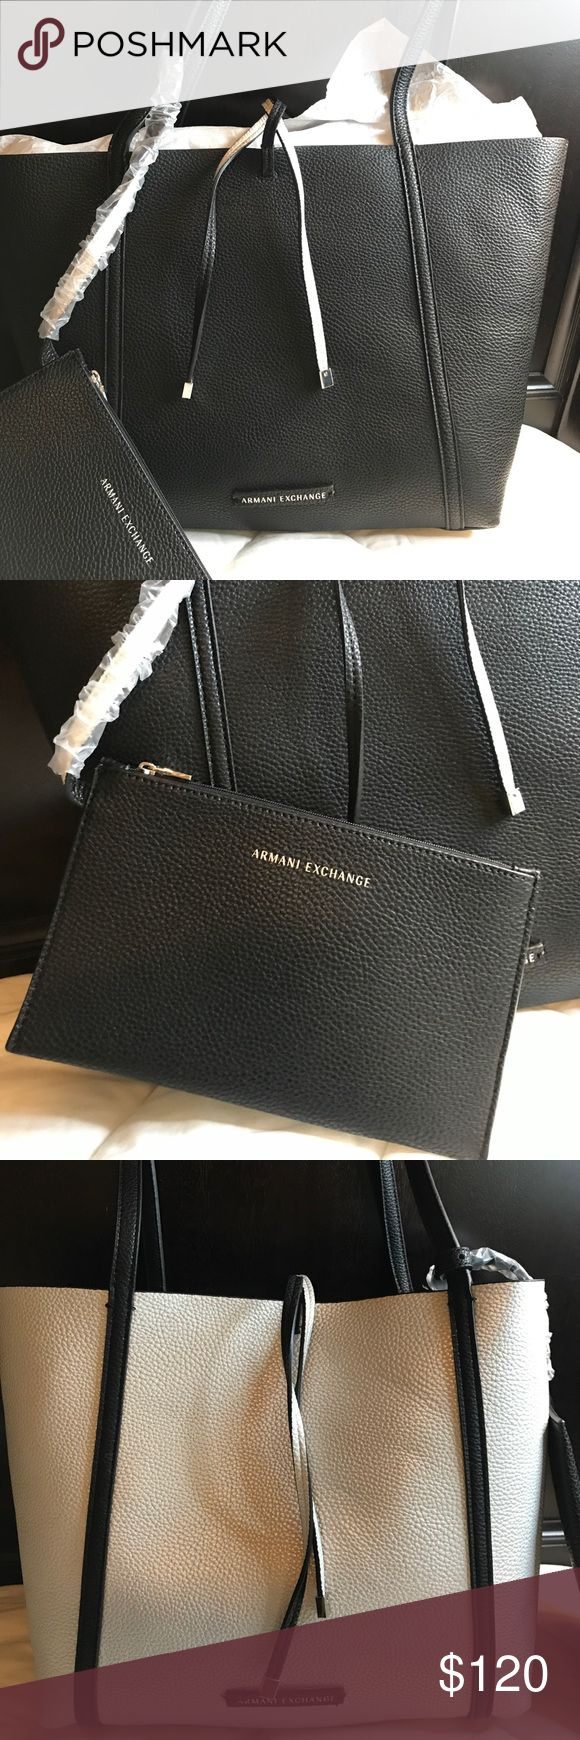 Armani Exchange reversible tote bag 👜 Black and silver Reversible Tote Bag with detachable pochette very versatile every day use bag or perfect for a xmas gift 🎁 Armani Exchange Bags Totes